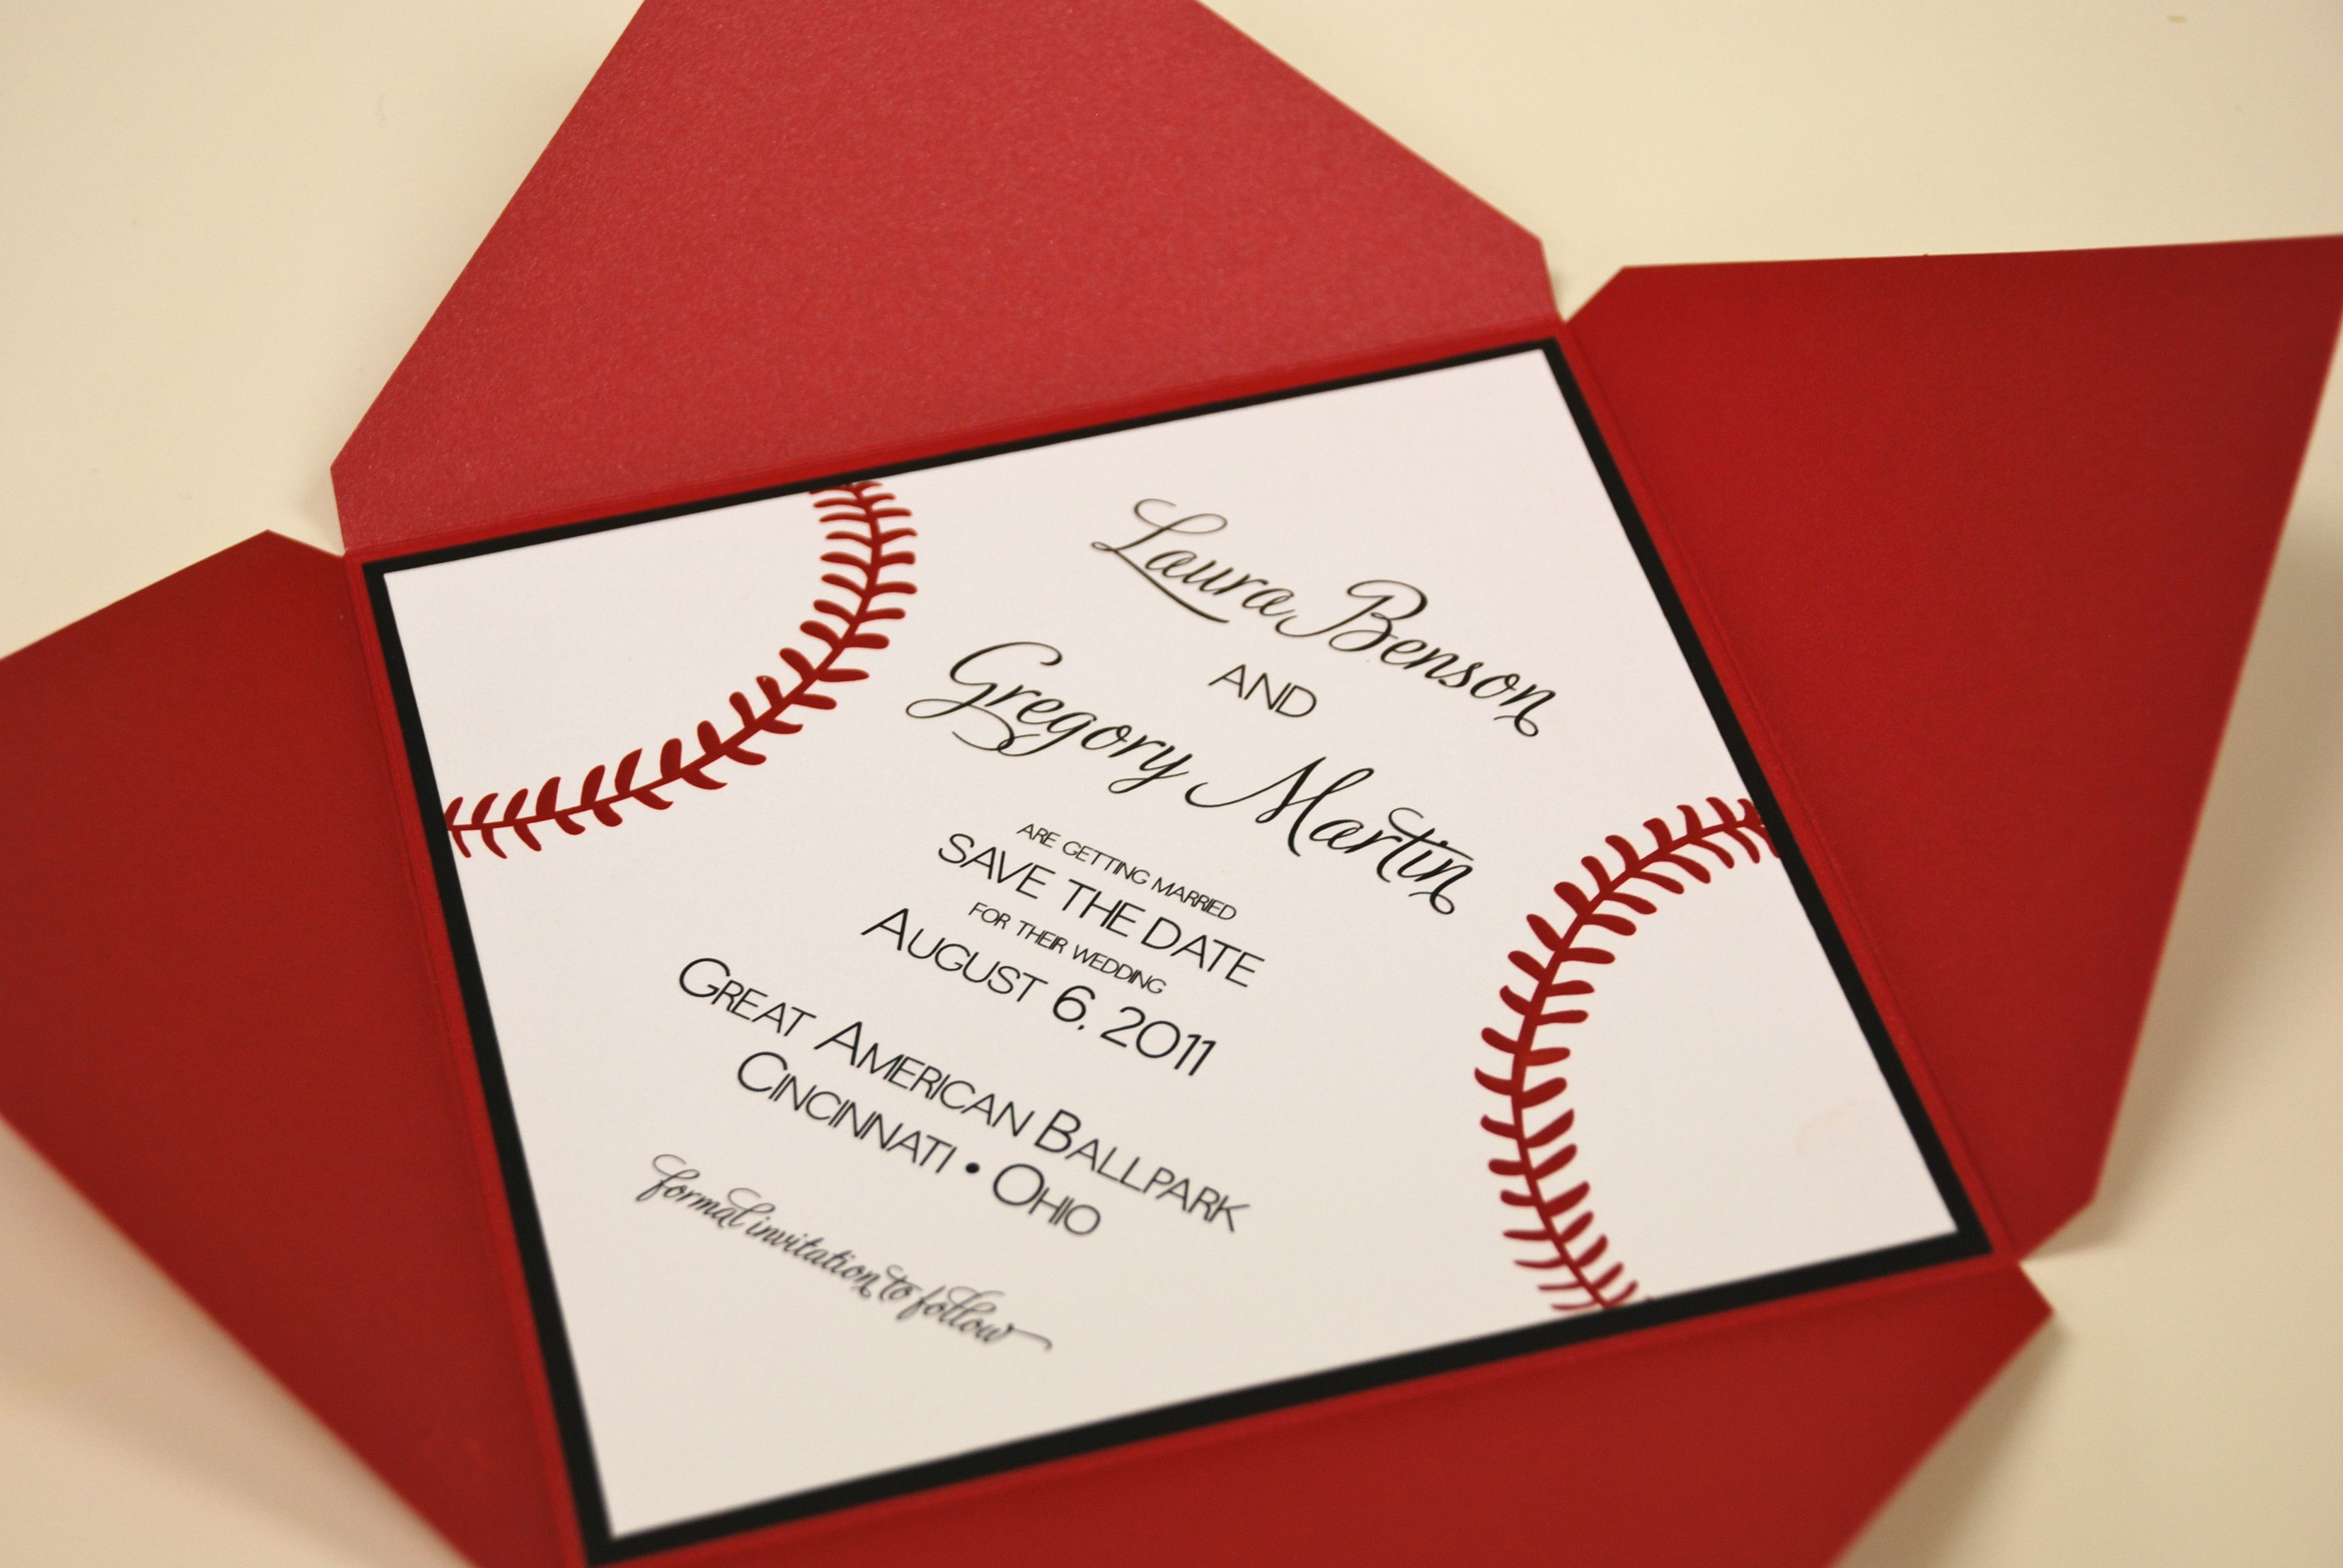 Great American Ballpark - Cincinnati Reds themed wedding invitation ...